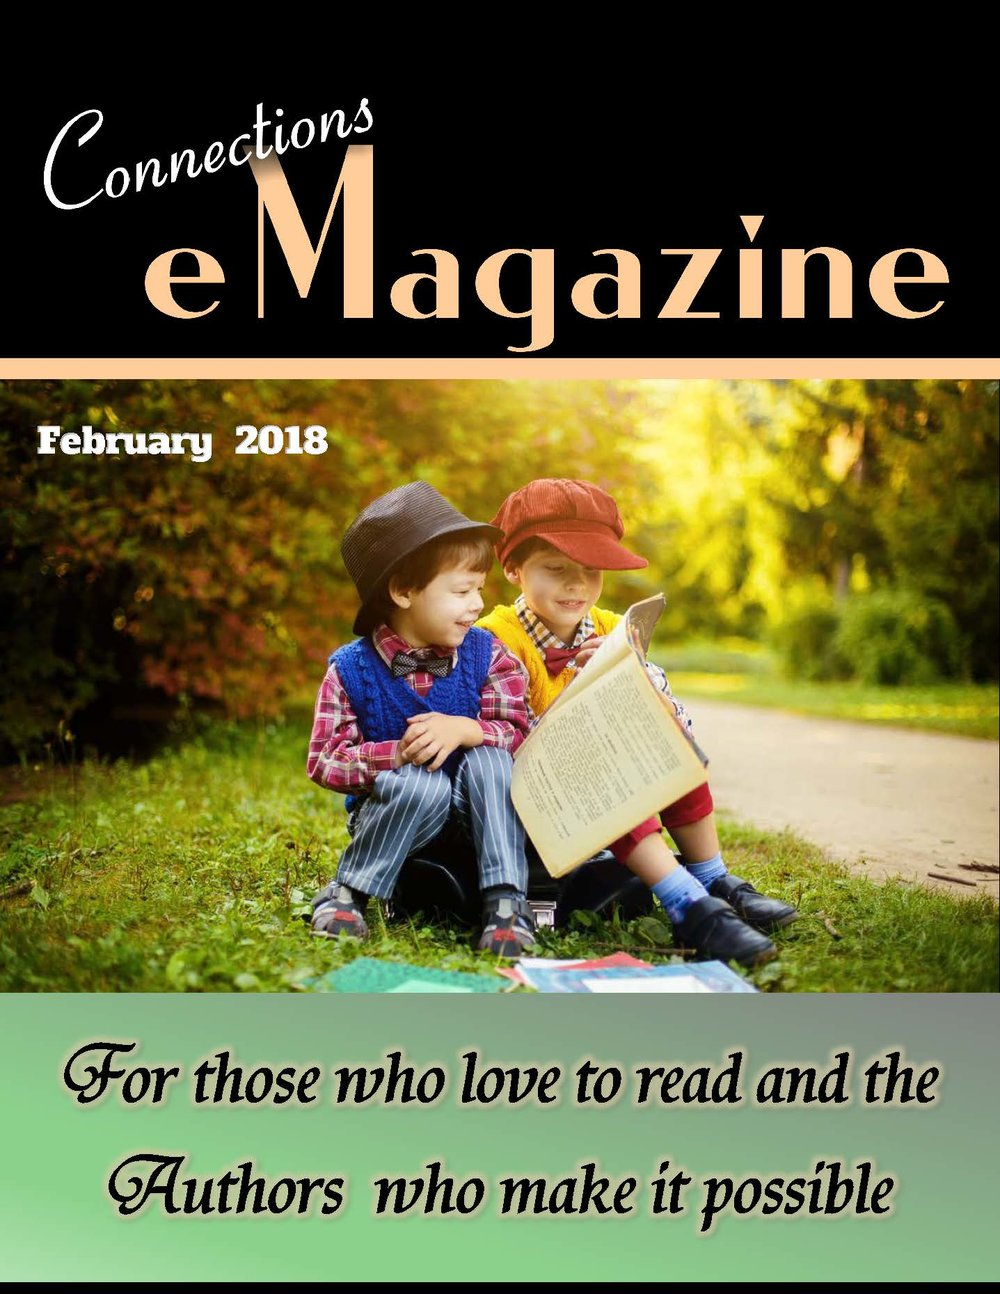 mpsmith-publishing-connections-emagazine-february-2018_Page_001.jpg